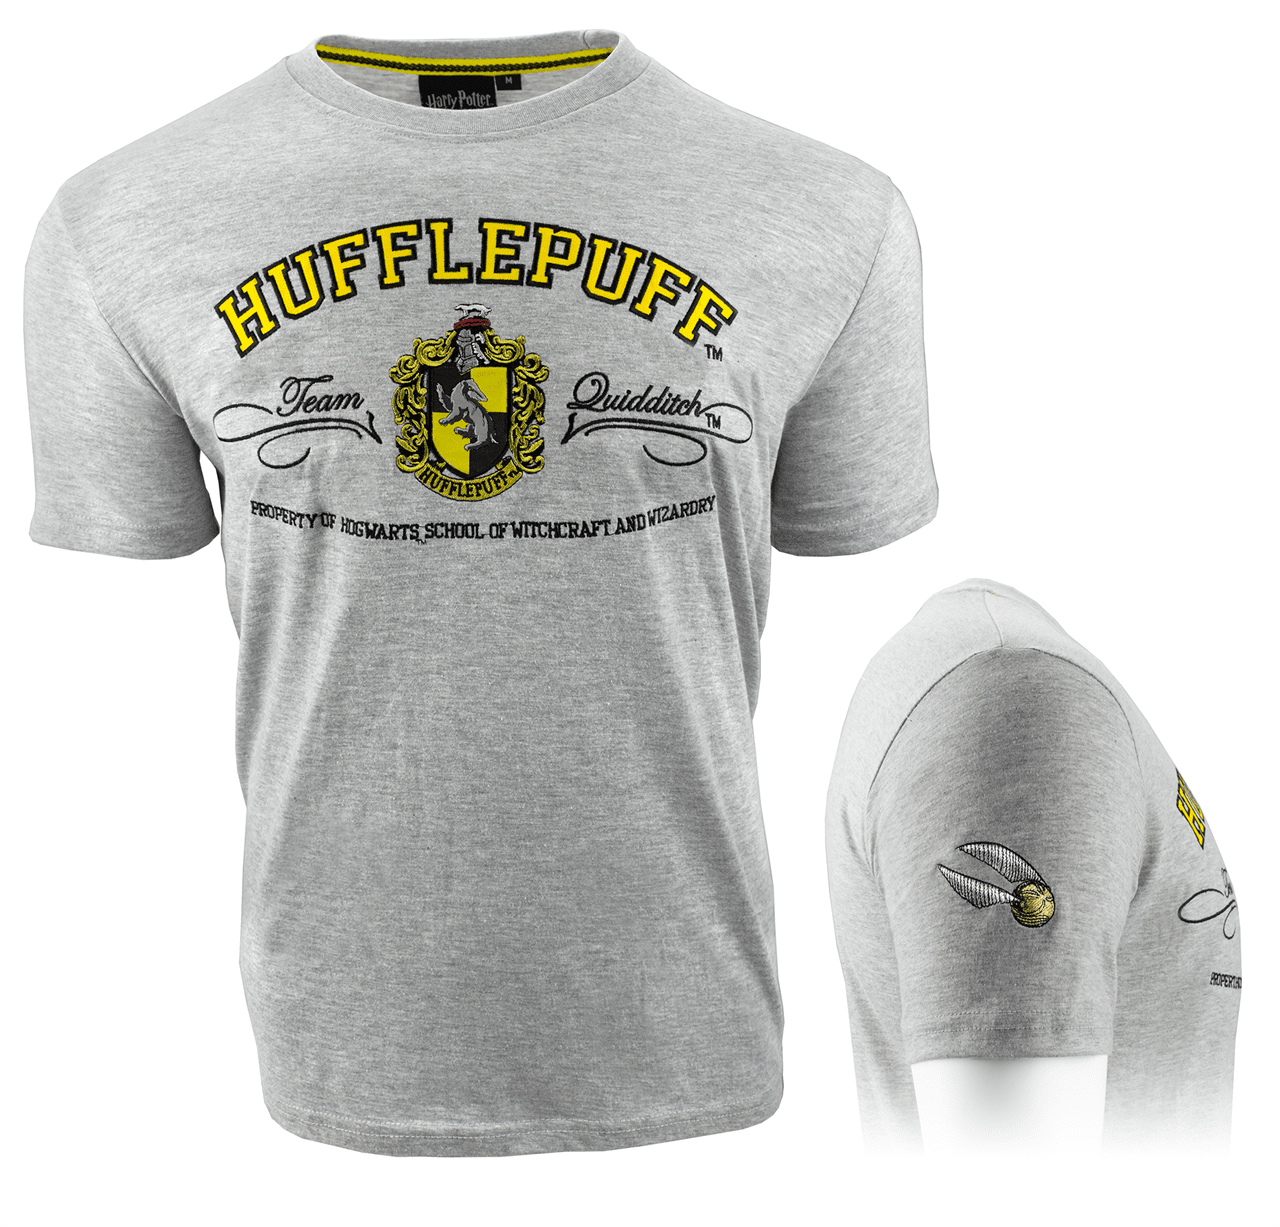 Harry Potter: Hufflepuff Quidditch (Small) - 1